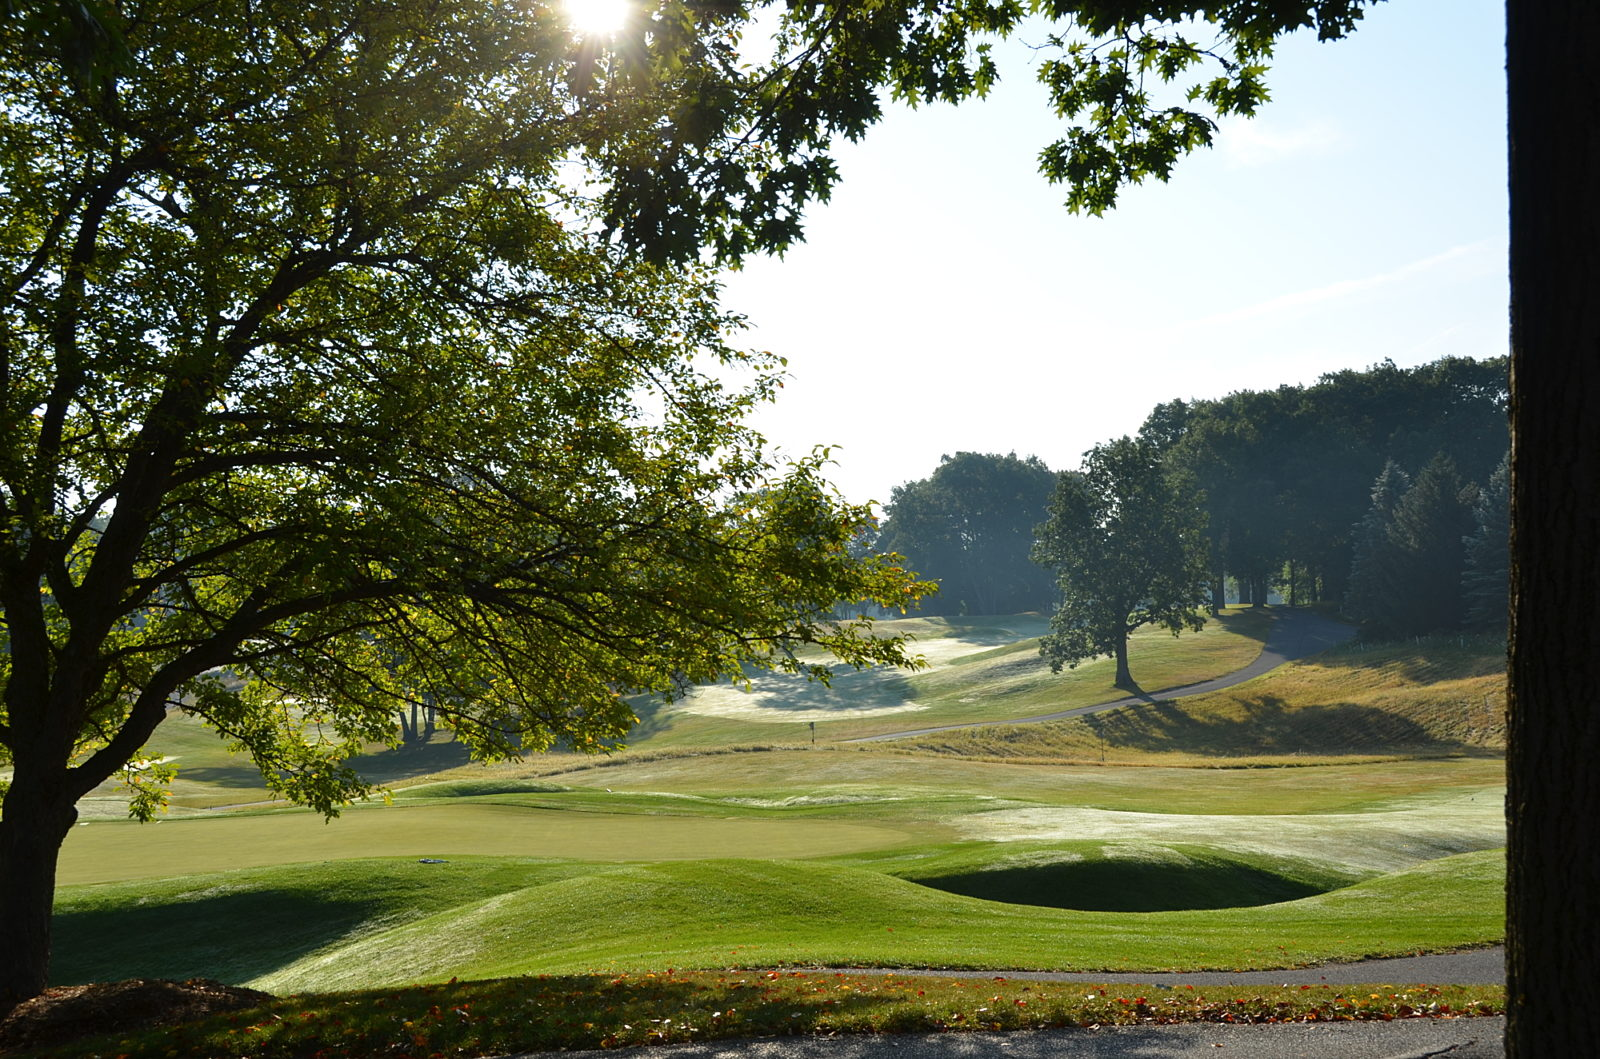 A tree-filled golf course with rolling green hills and sand traps.